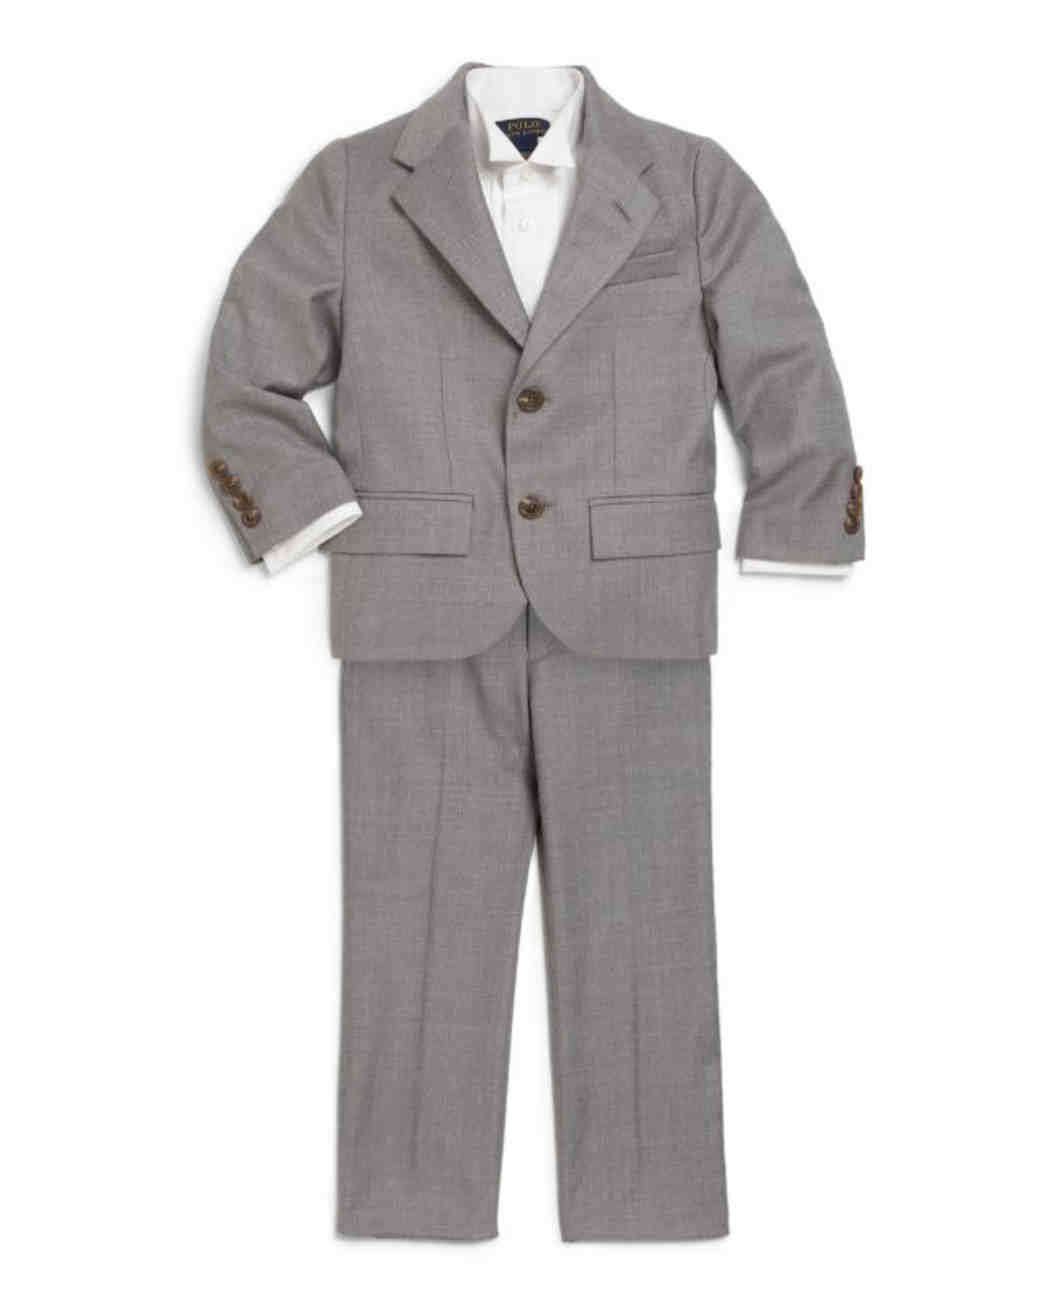 ralph lauren grey ring bearer suit